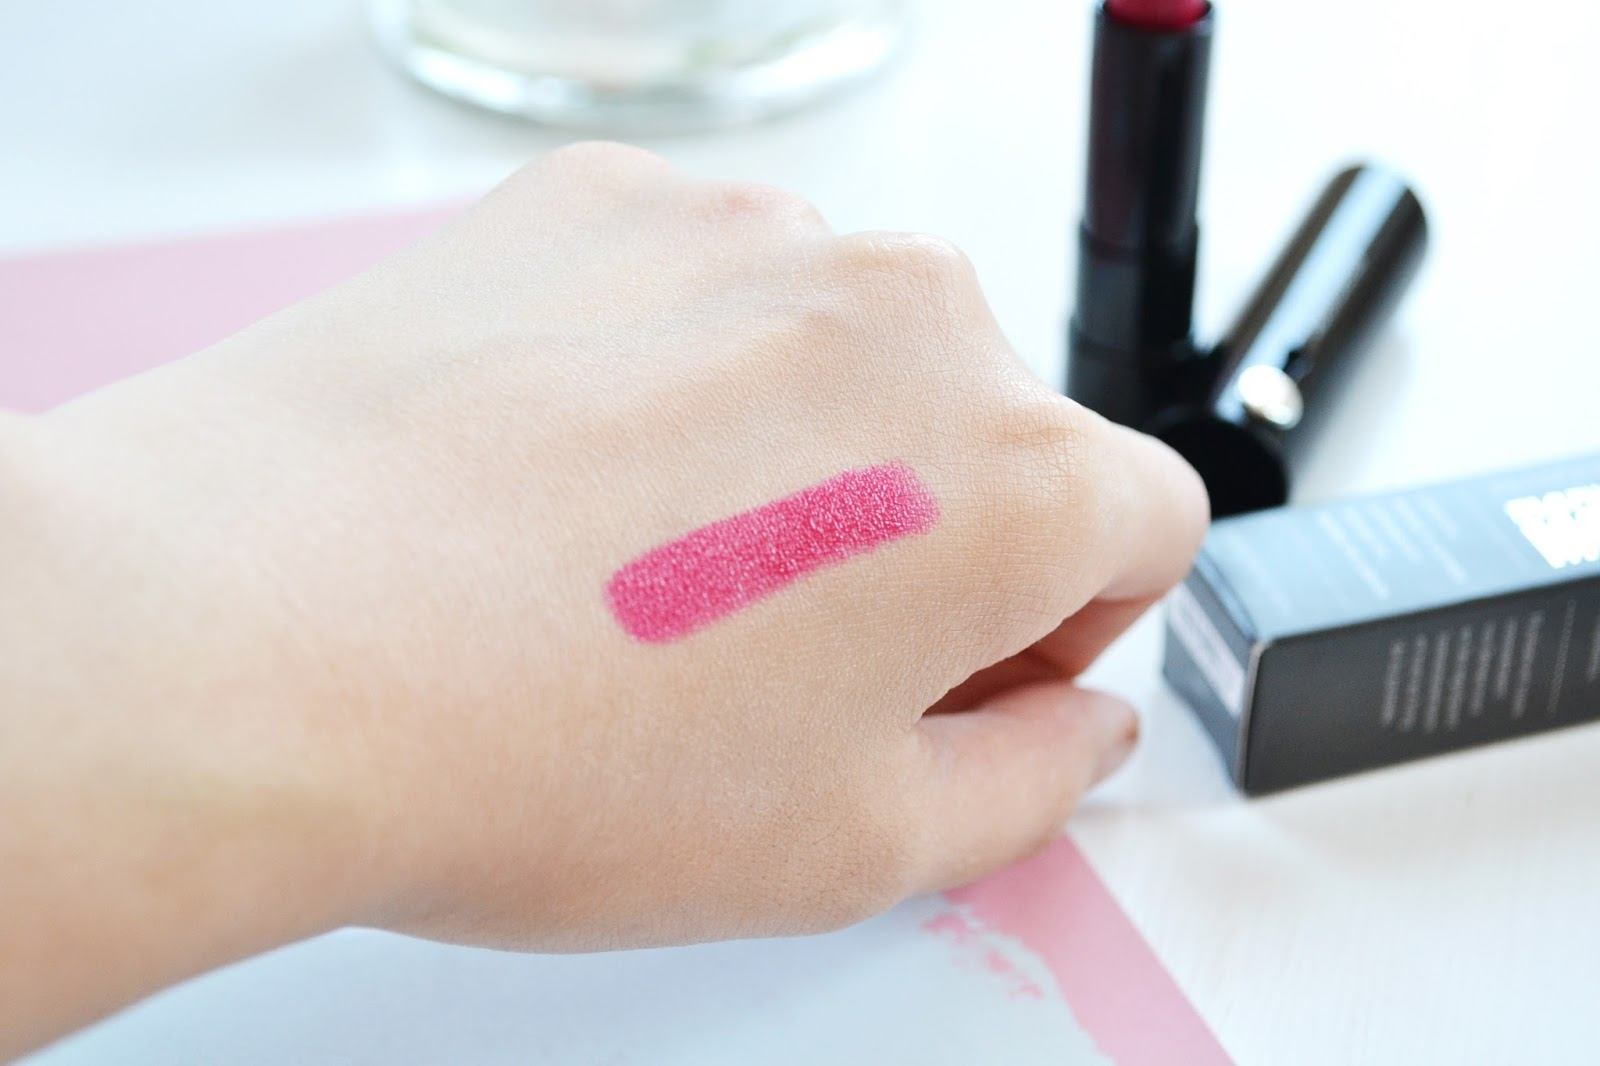 bareminerals risk it all lipstick swatch